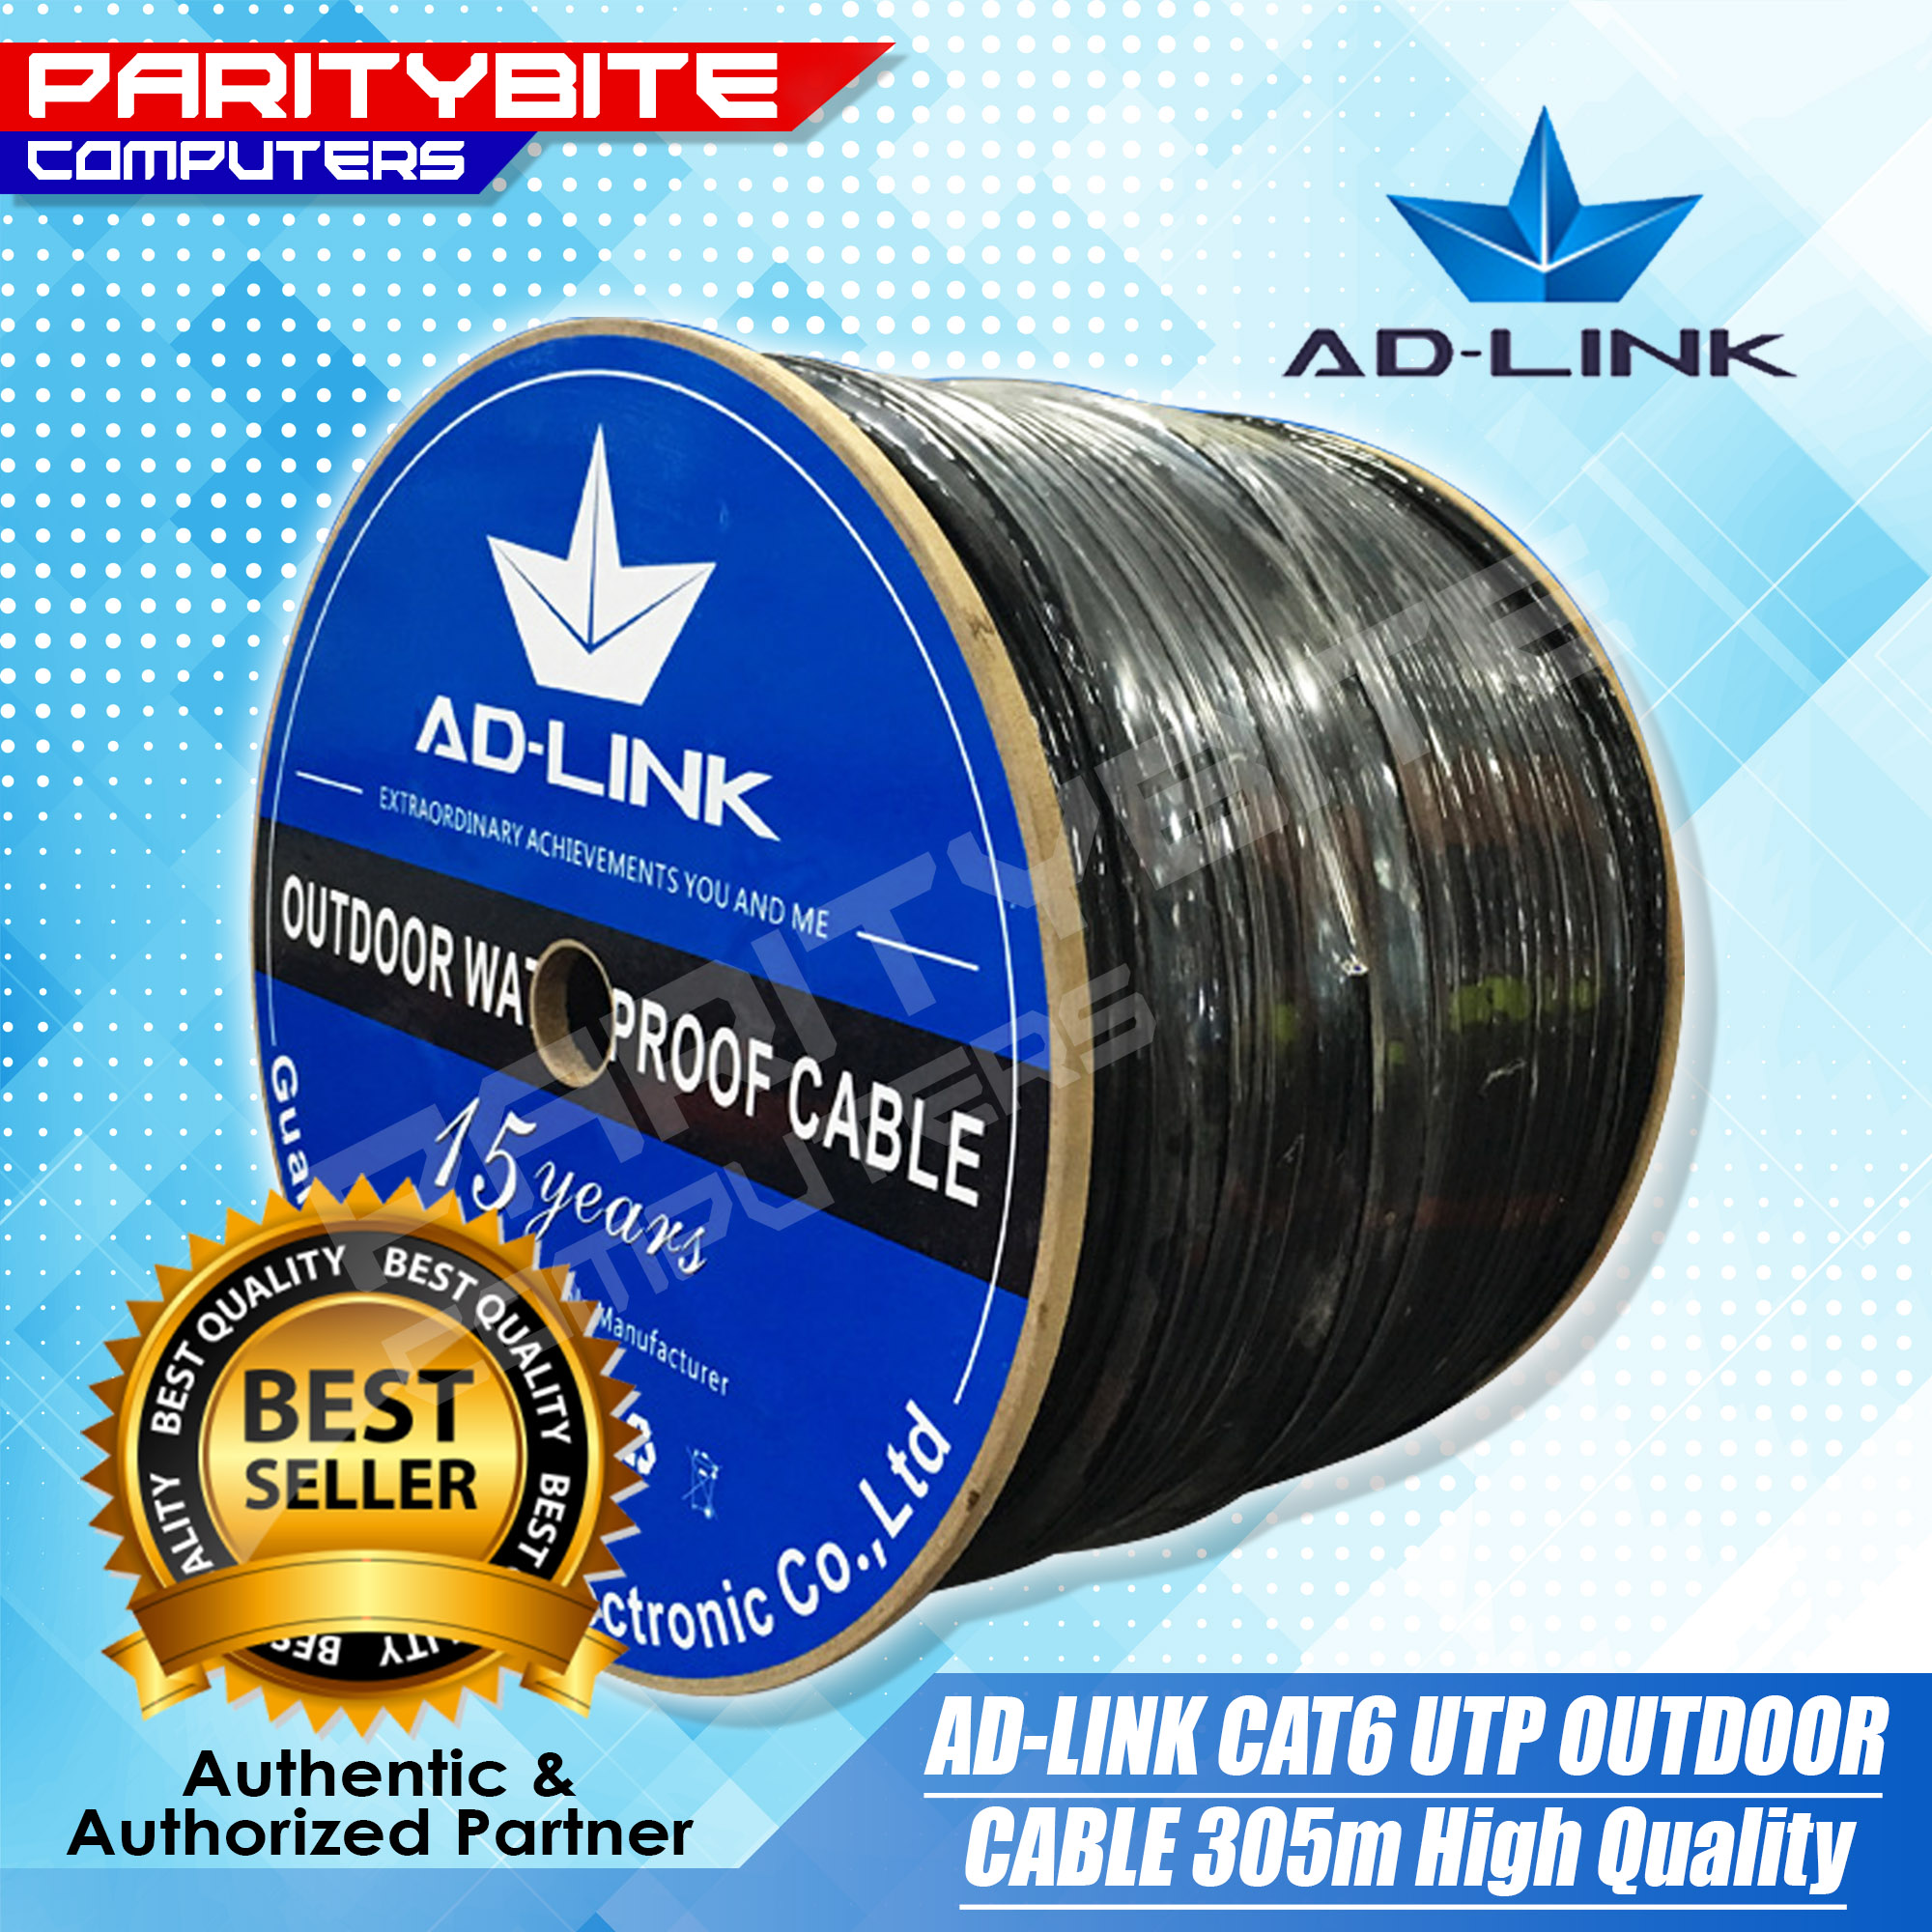 Ad-link CAT6 Outdoor UTP Cable 305M High Quality